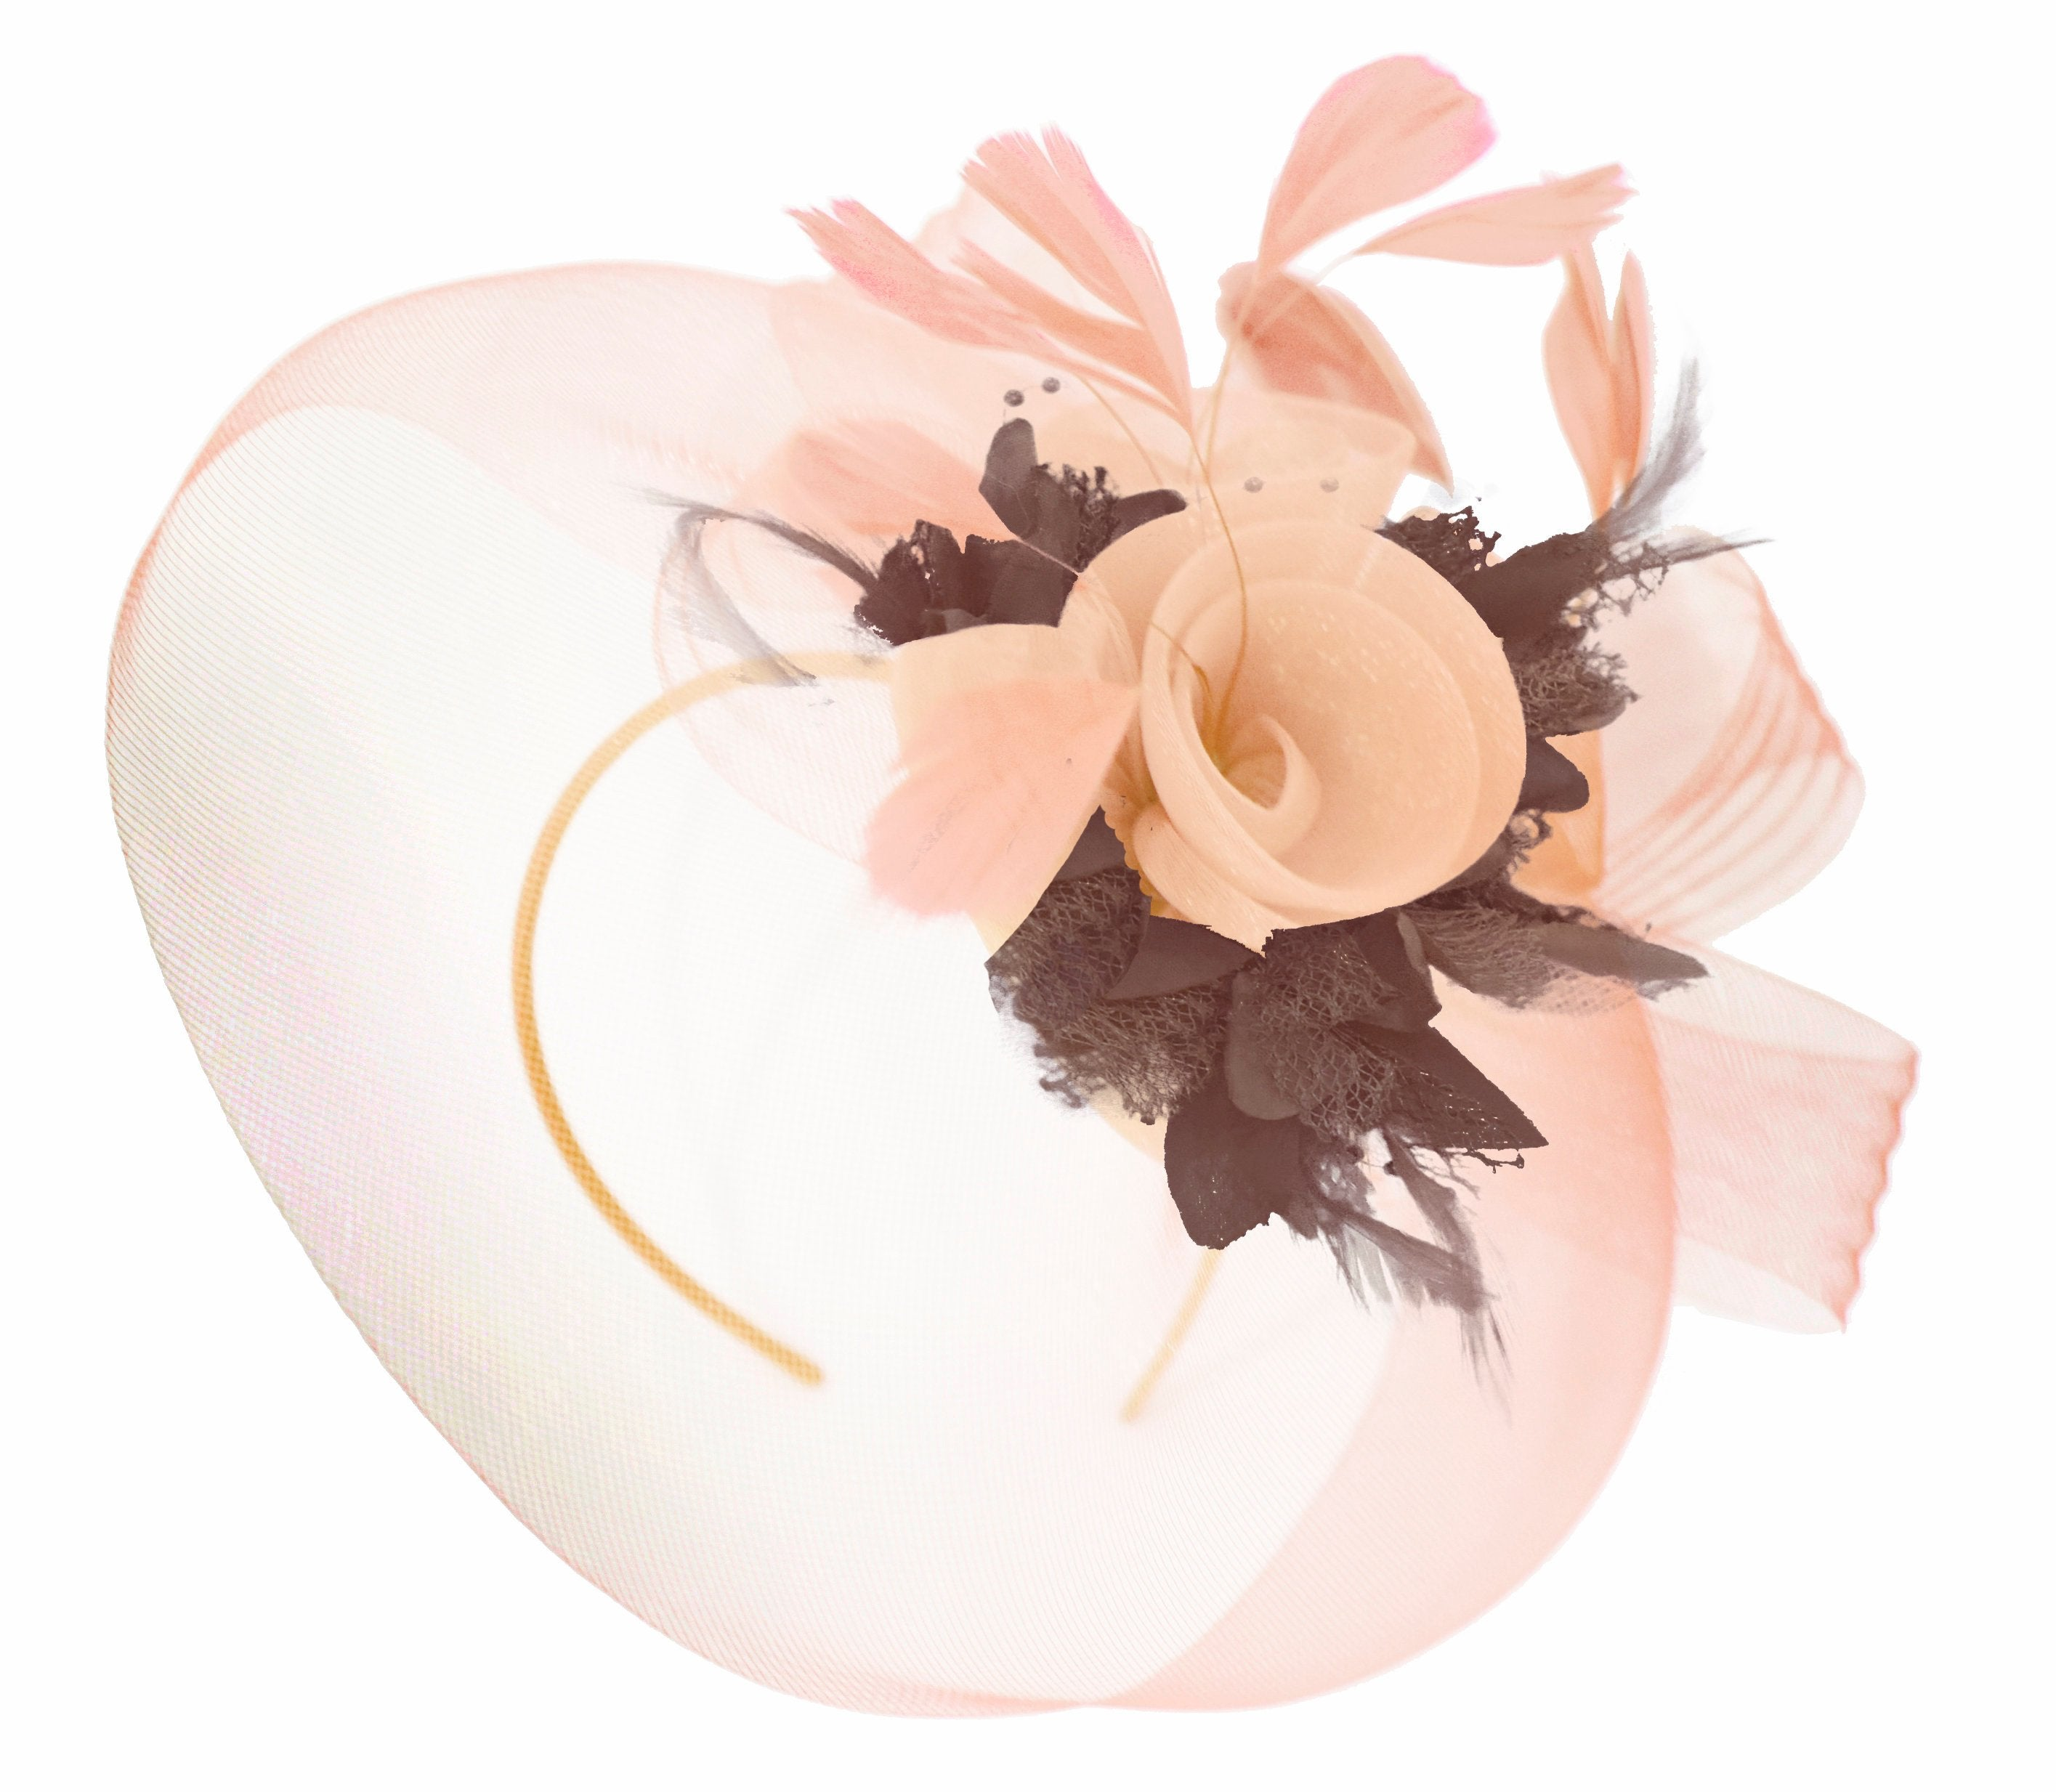 Caprilite Nude Pink Peach and Brown Fascinator Hat Veil Net Hair Clip Ascot Derby Races Wedding Headband Feather Flower